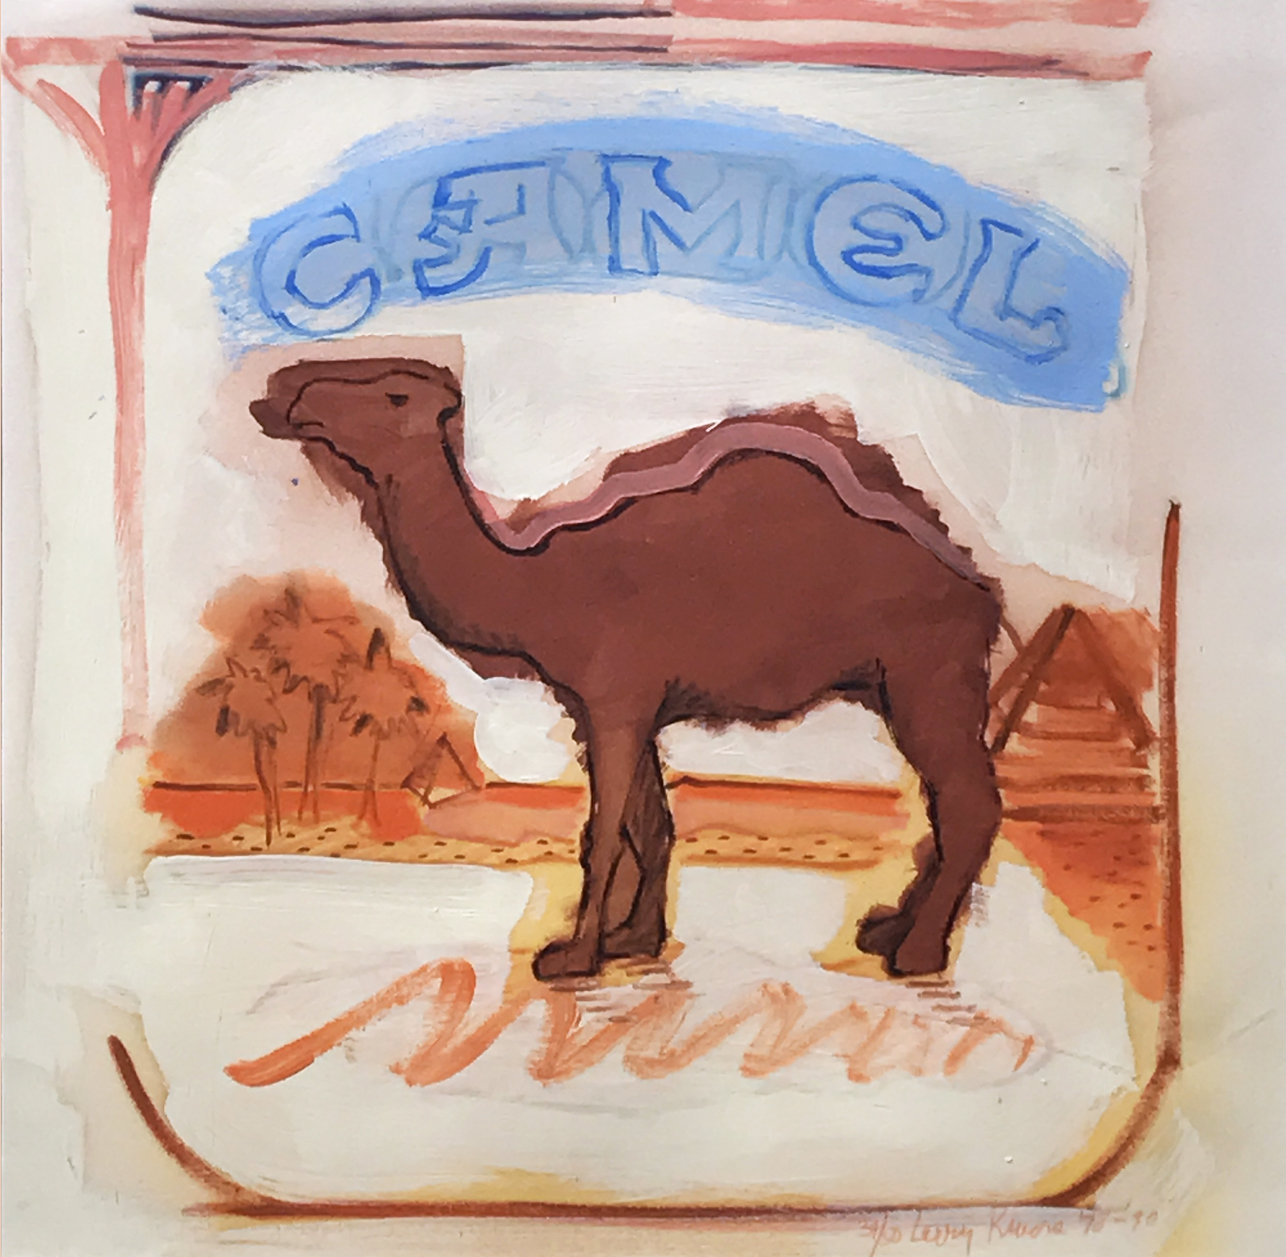 1.	Larry Rivers. Brushed Camel, 1978-1990. Silkscreen and litho with hand painting, ed. 34/50, 22 ½ x 23 ½ in.